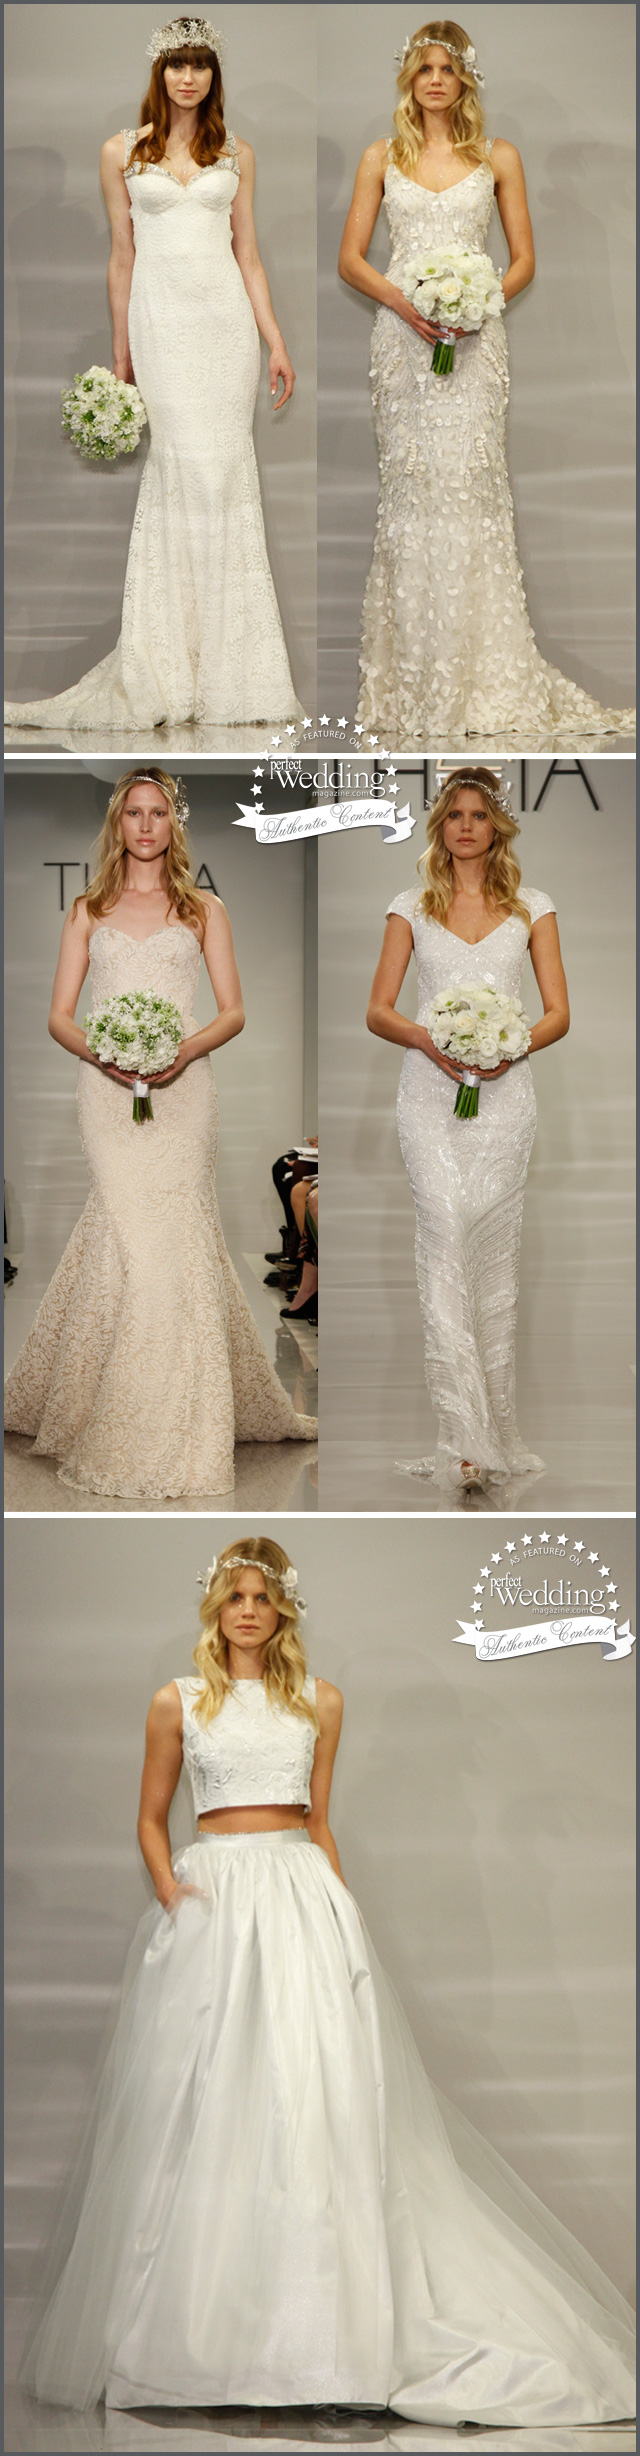 Theia, Theia Spring 2015, Perfect Wedding magazine, Perfect Wedding Blog, Perfect wedding magazine blog, New York Bridal Week